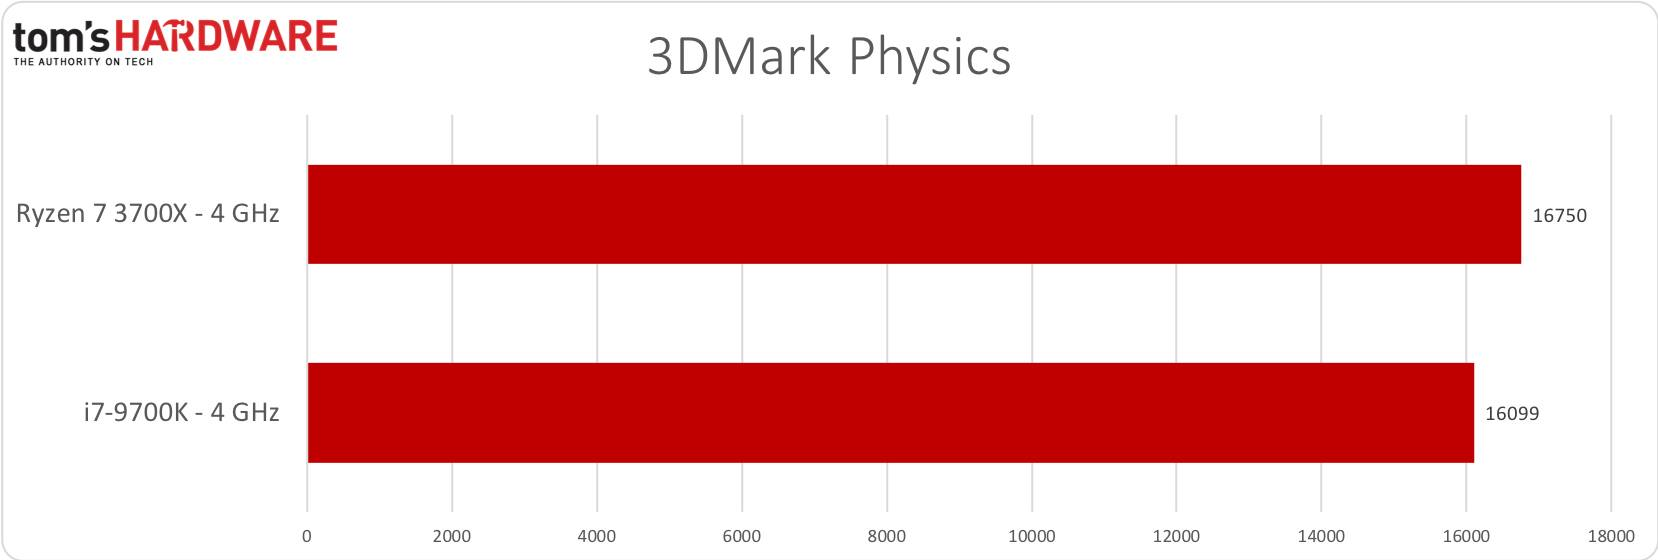 3DMark Physics - 4GHz